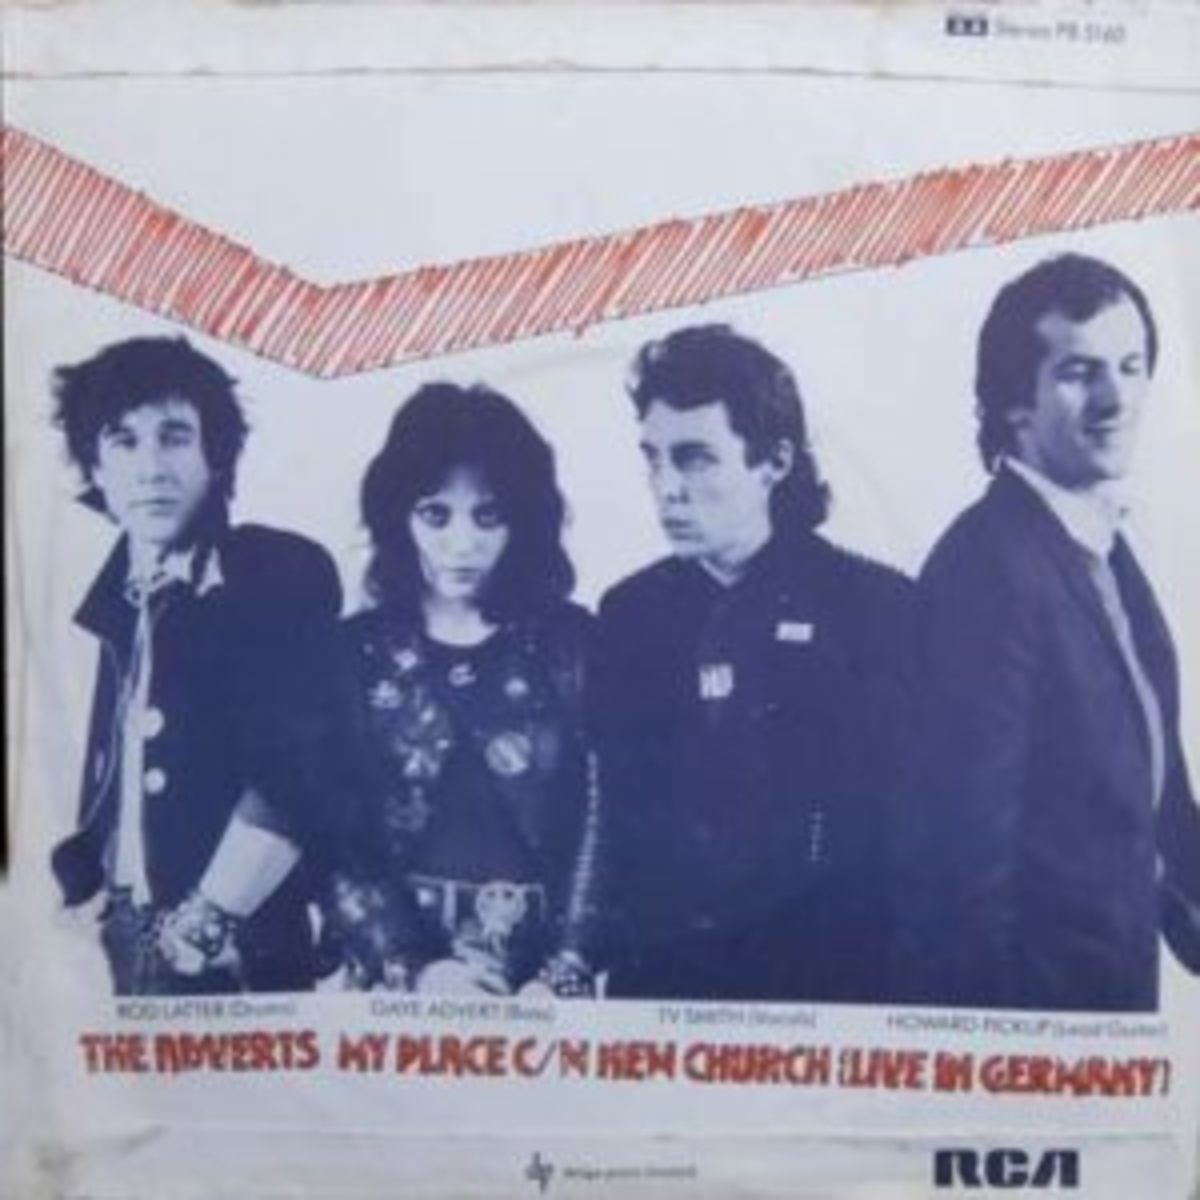 Rod and the Adverts - lr: Rod, Gate Advert, TV Smith, Howard Pickupo